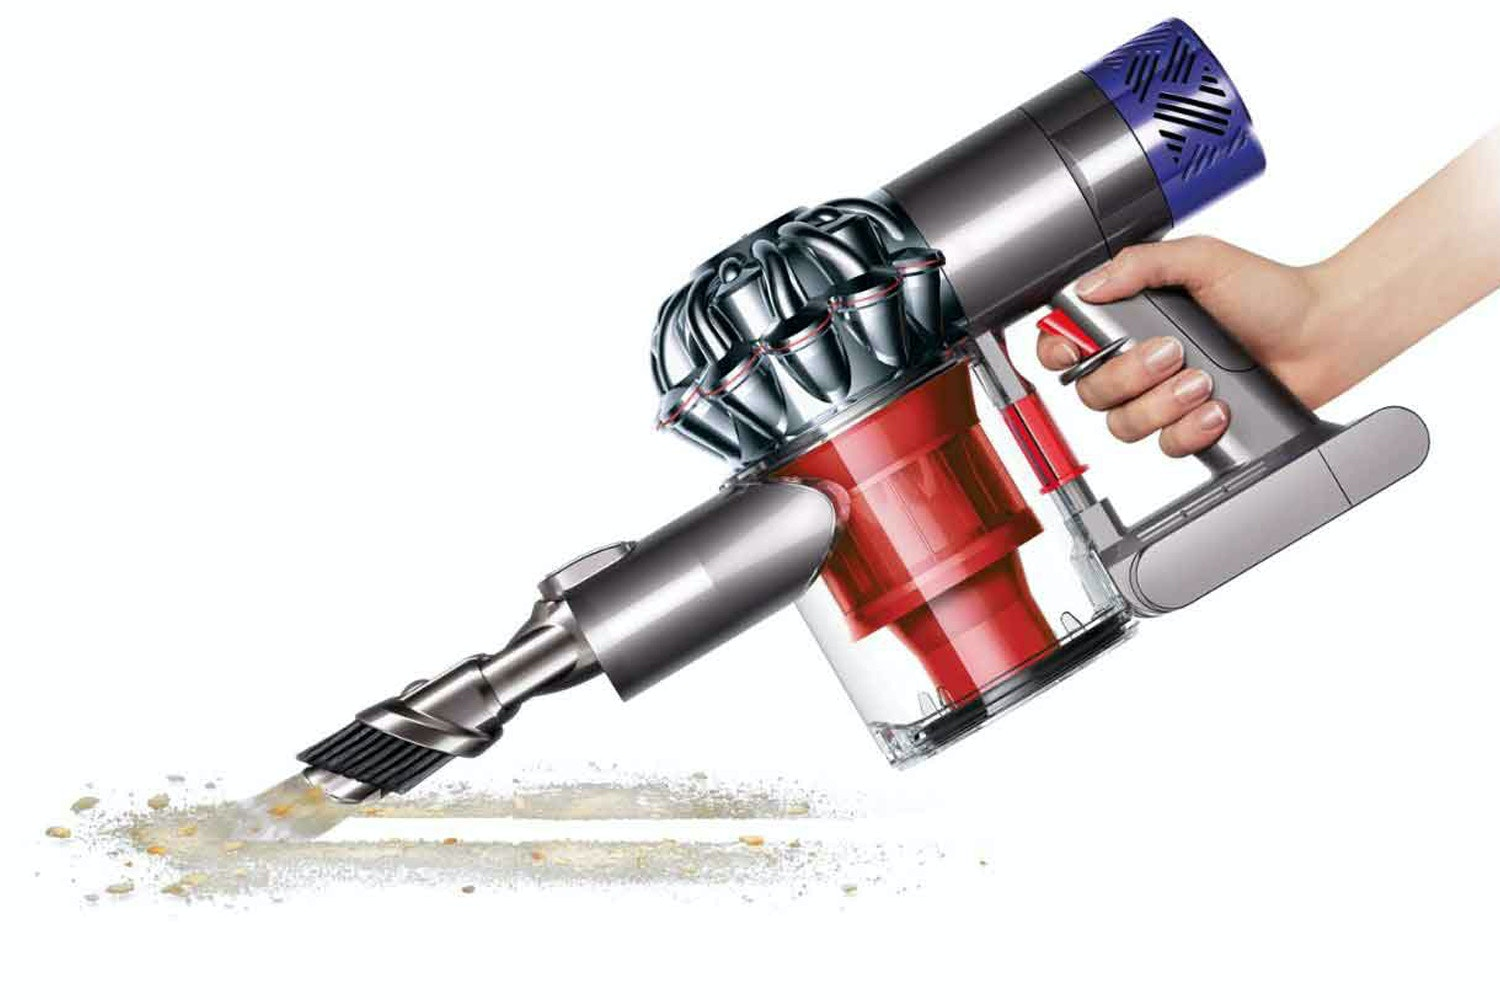 Dyson V6 Absolute Cordless Vacuum Cleaner | 234032-01